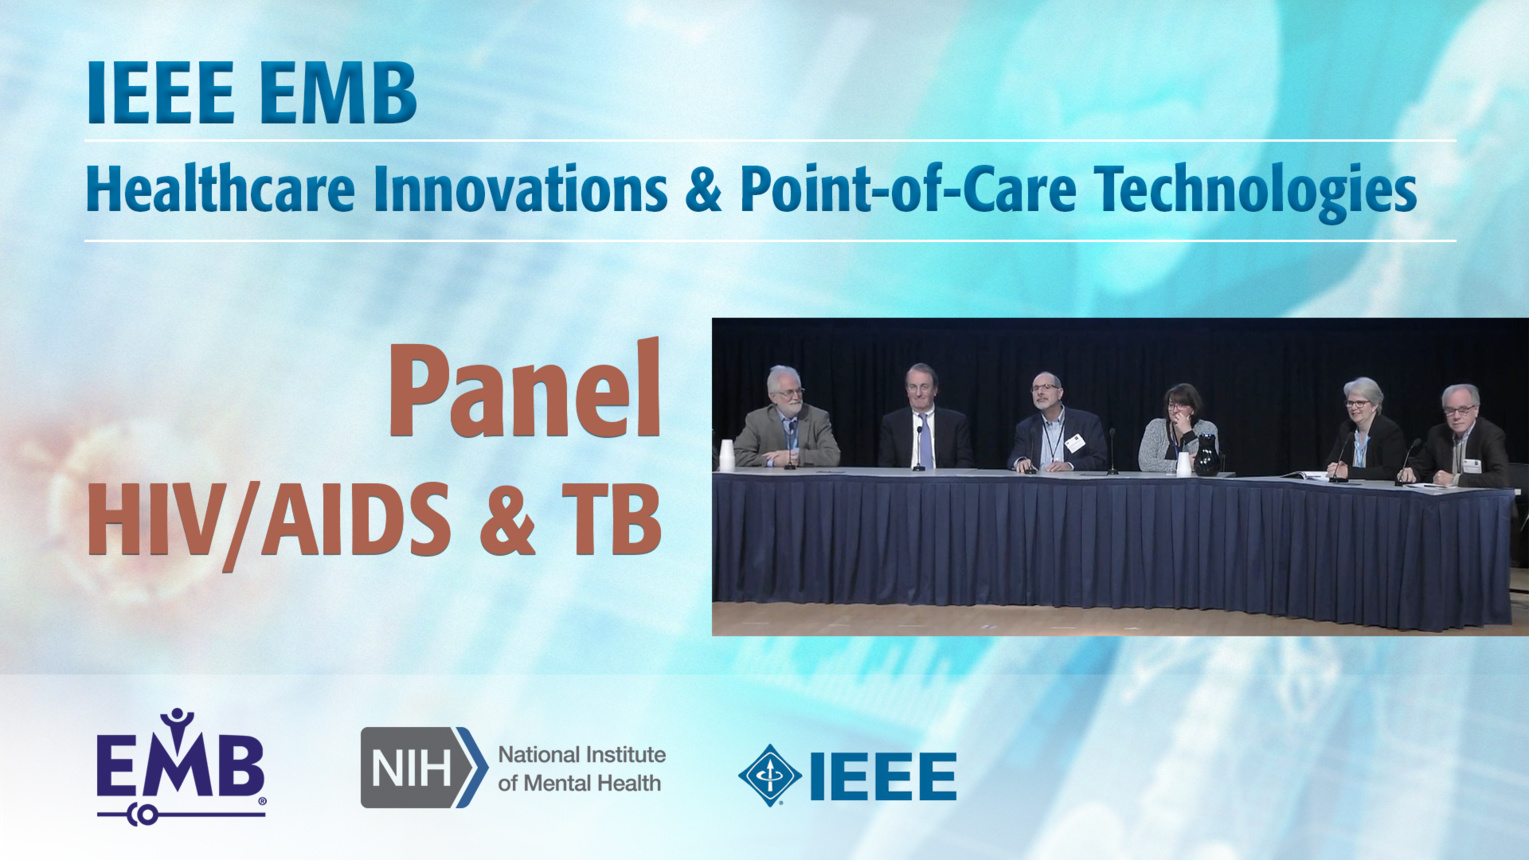 Panel: Unmet Needs in HIV/AIDS & TB Diagnosis & Management - IEEE EMBS at NIH, 2019